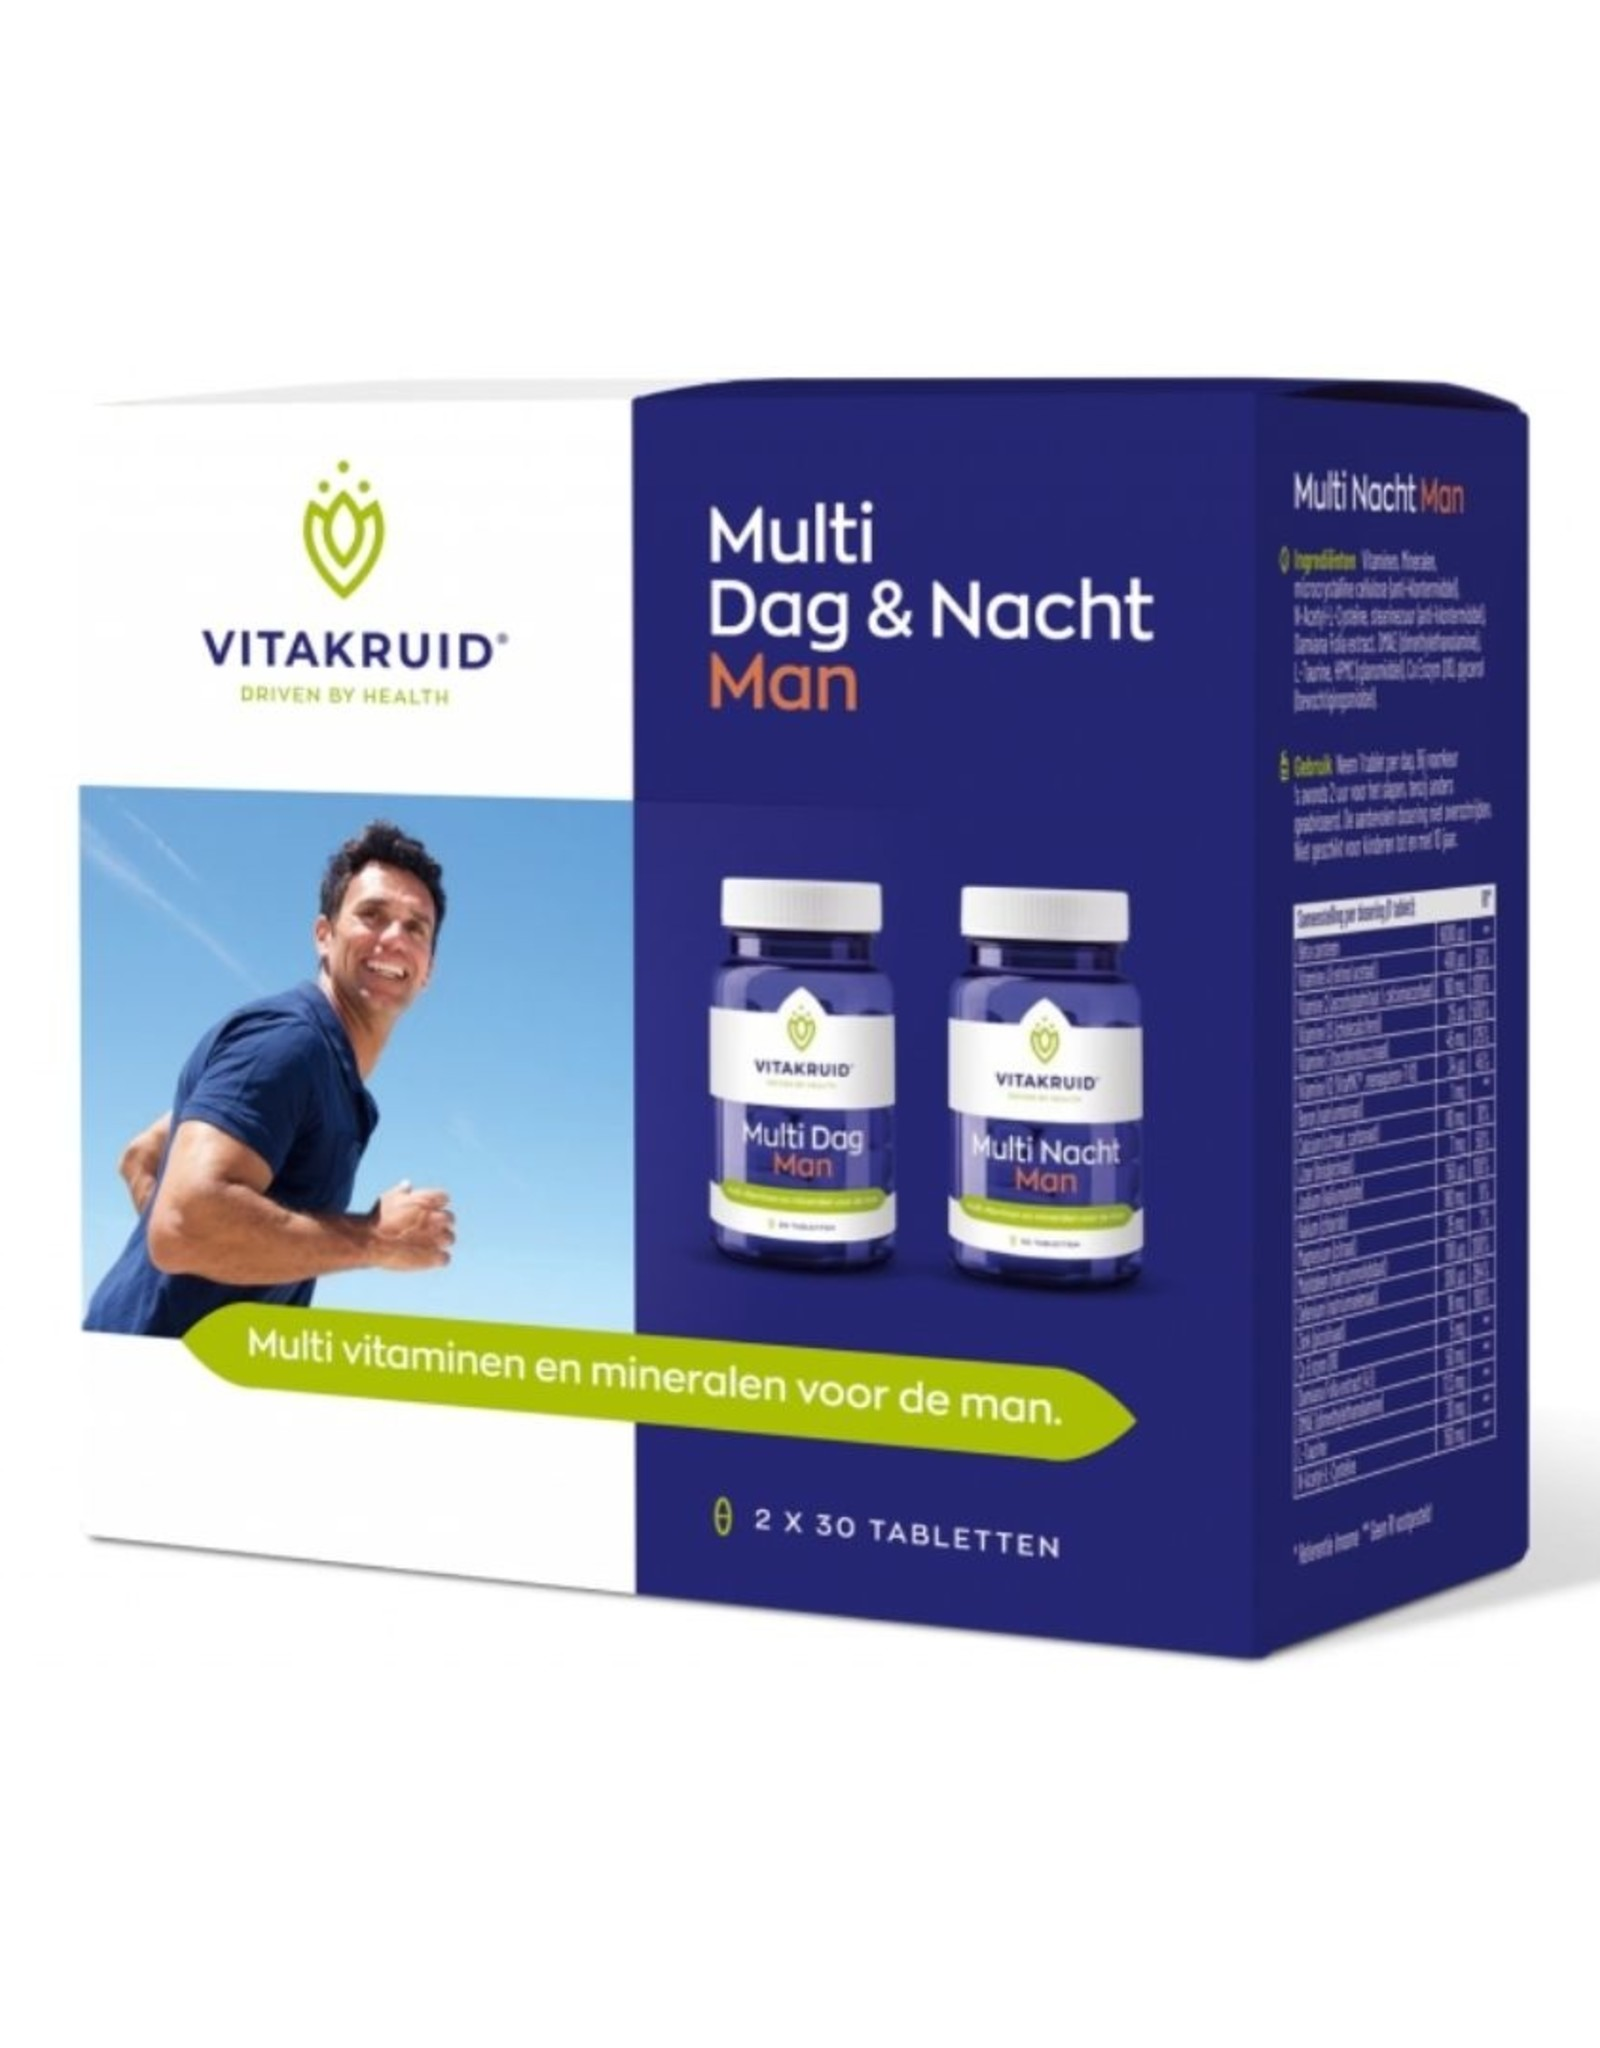 Vitakruid Multivitamine Dag & Nacht Man